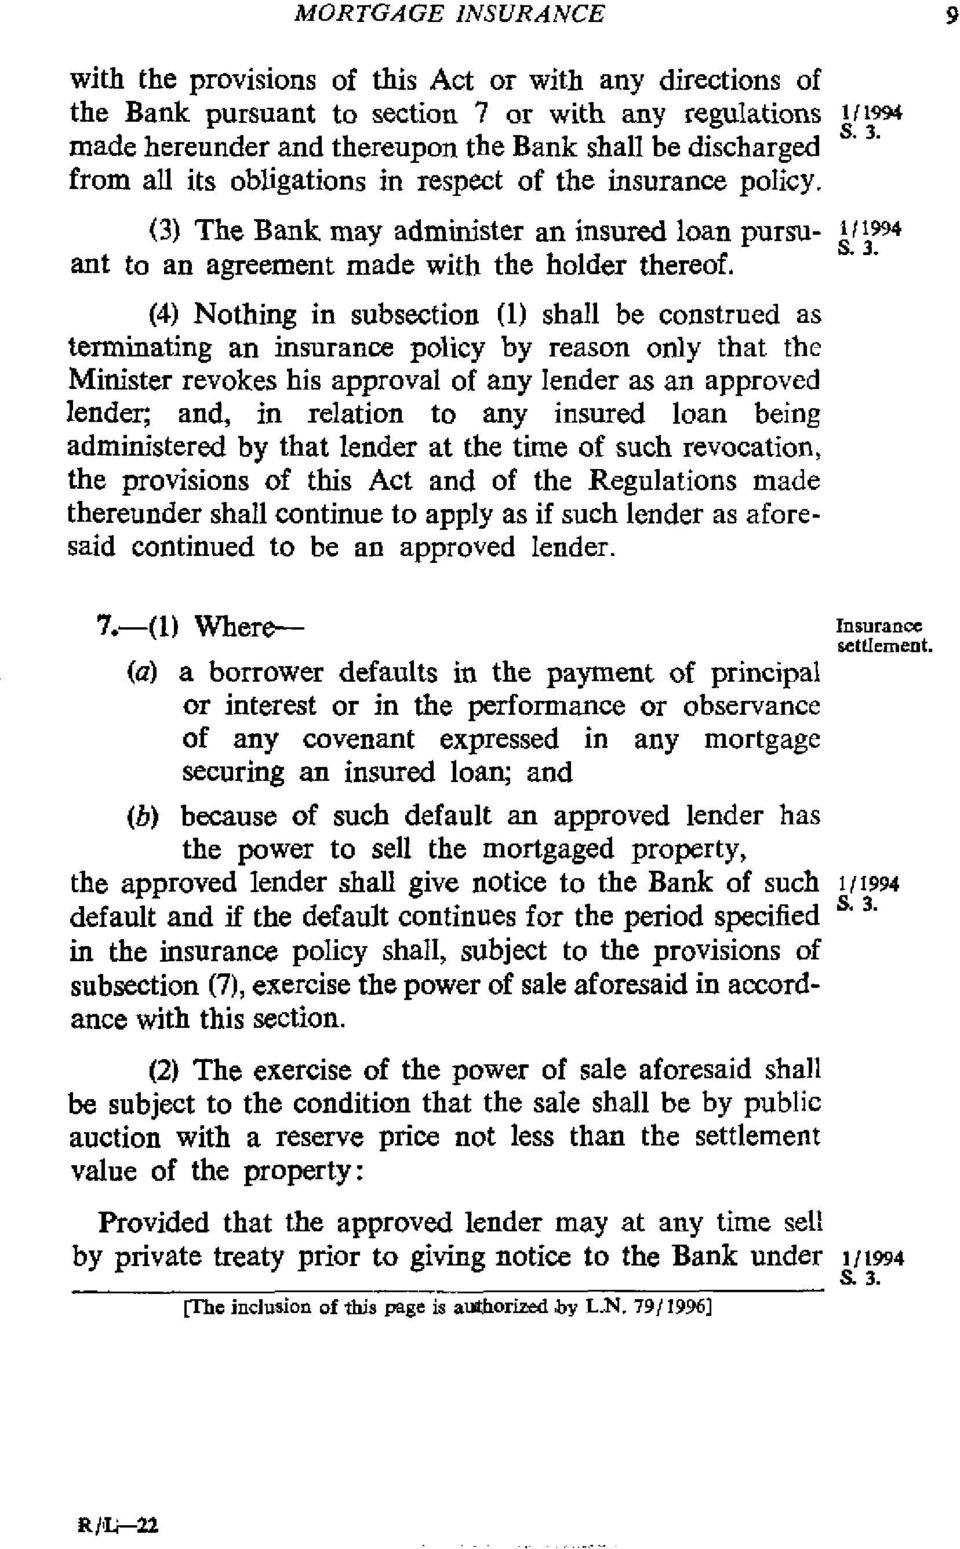 (4) Nothing in subsection (1) shall be construed as terminating an insurance policy by reason only that the Minister revokes his approval of any lender as an approved lender; and, in relation to any